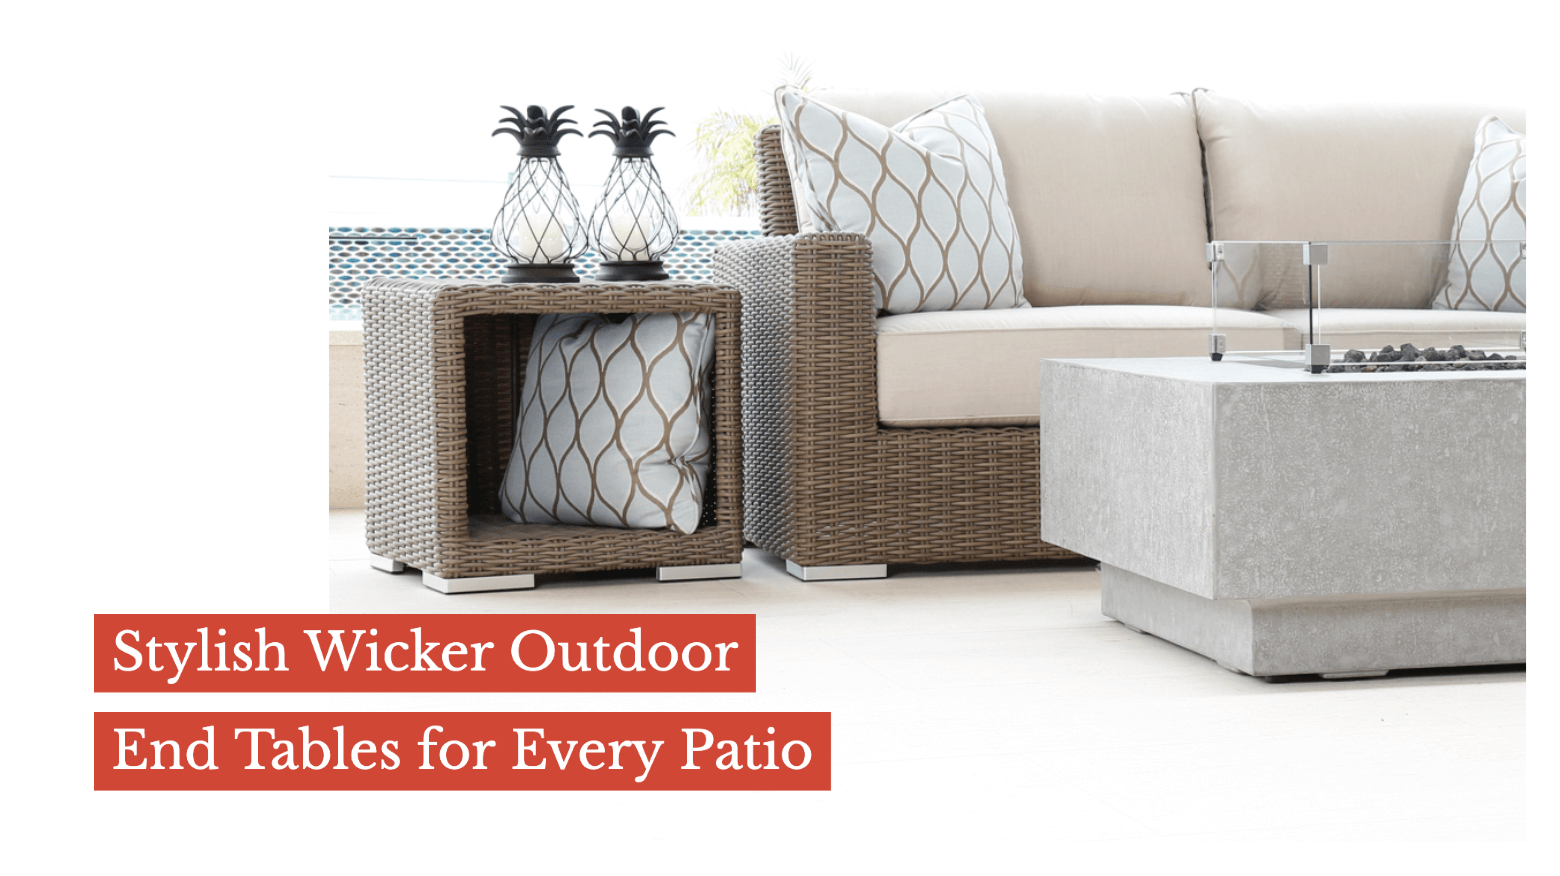 Stylish Wicker Outdoor End Tables for Every Patio